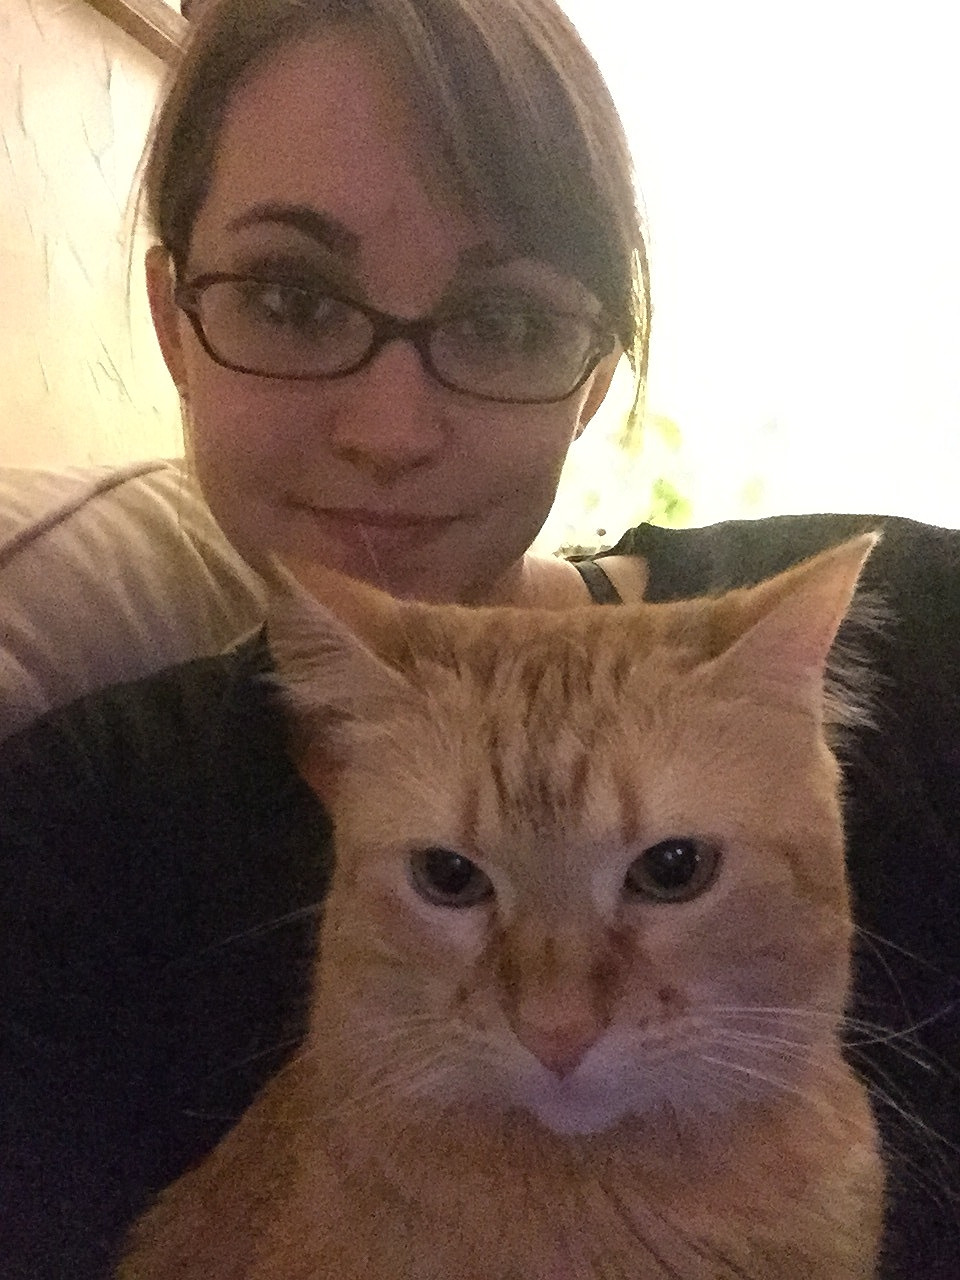 Honey wanted a selfie. She's pretty serious about that kind of stuff.